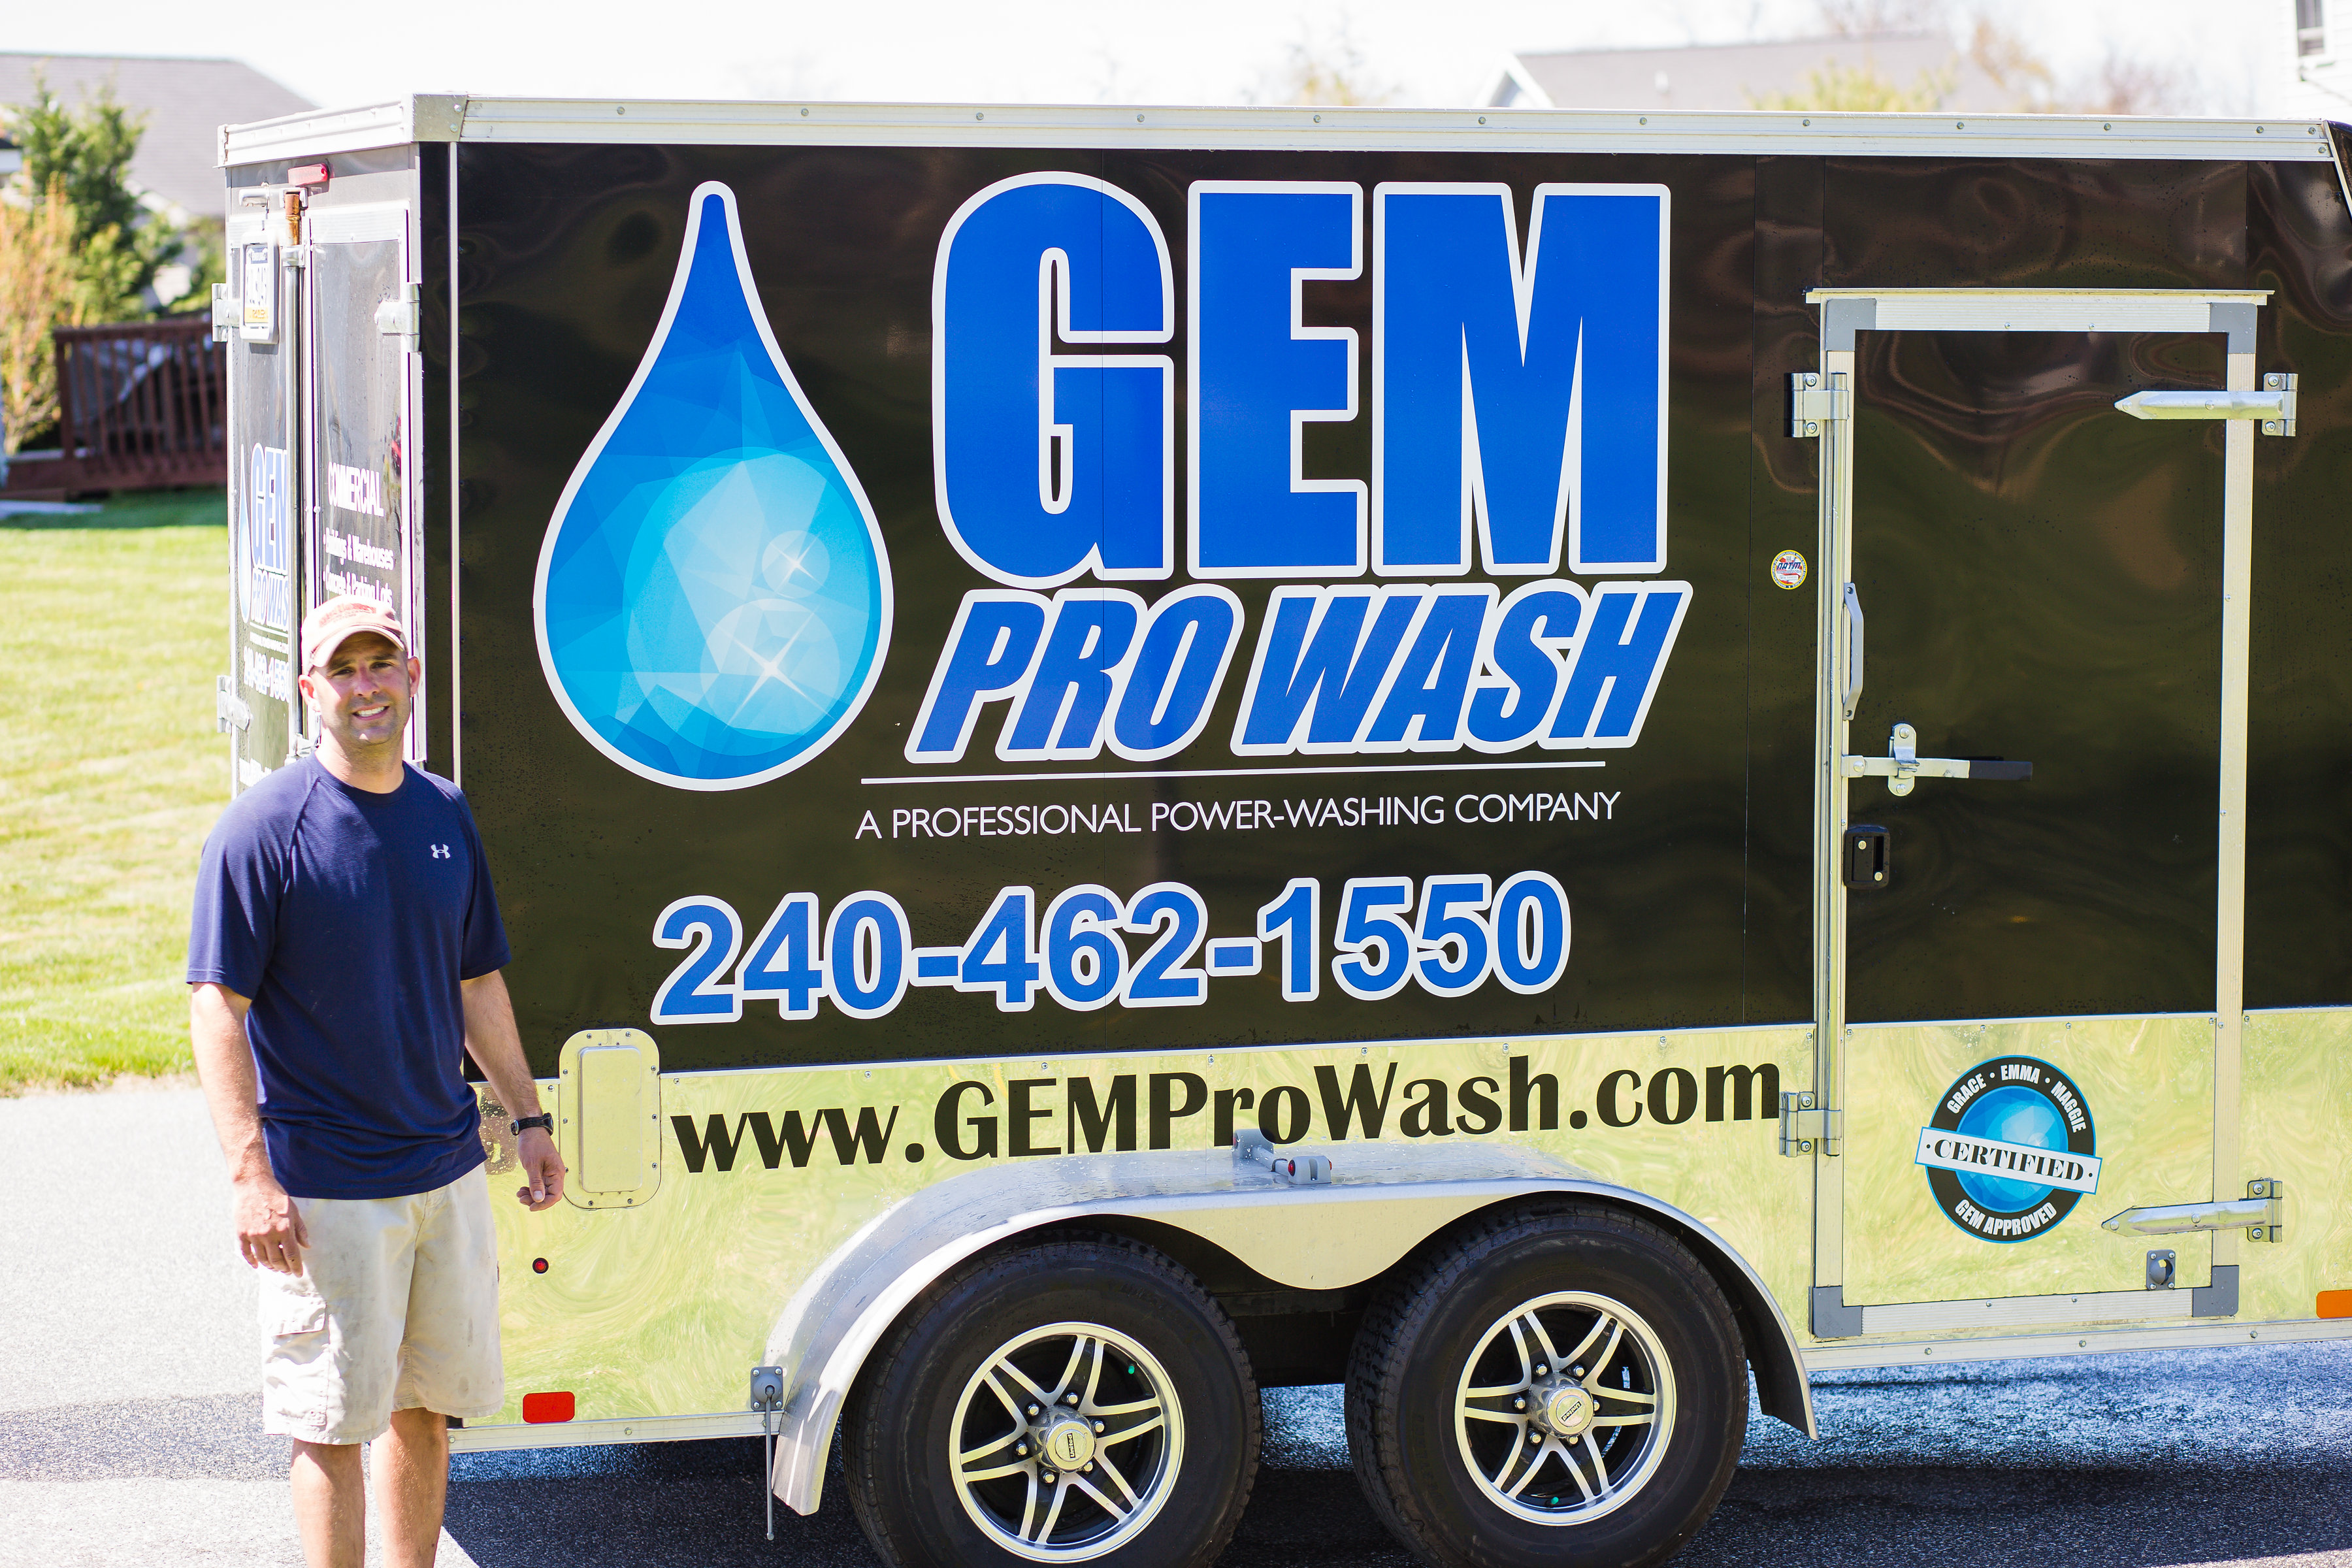 Gem Pro Wash | Pressure Washing Company in Hagerstown MD